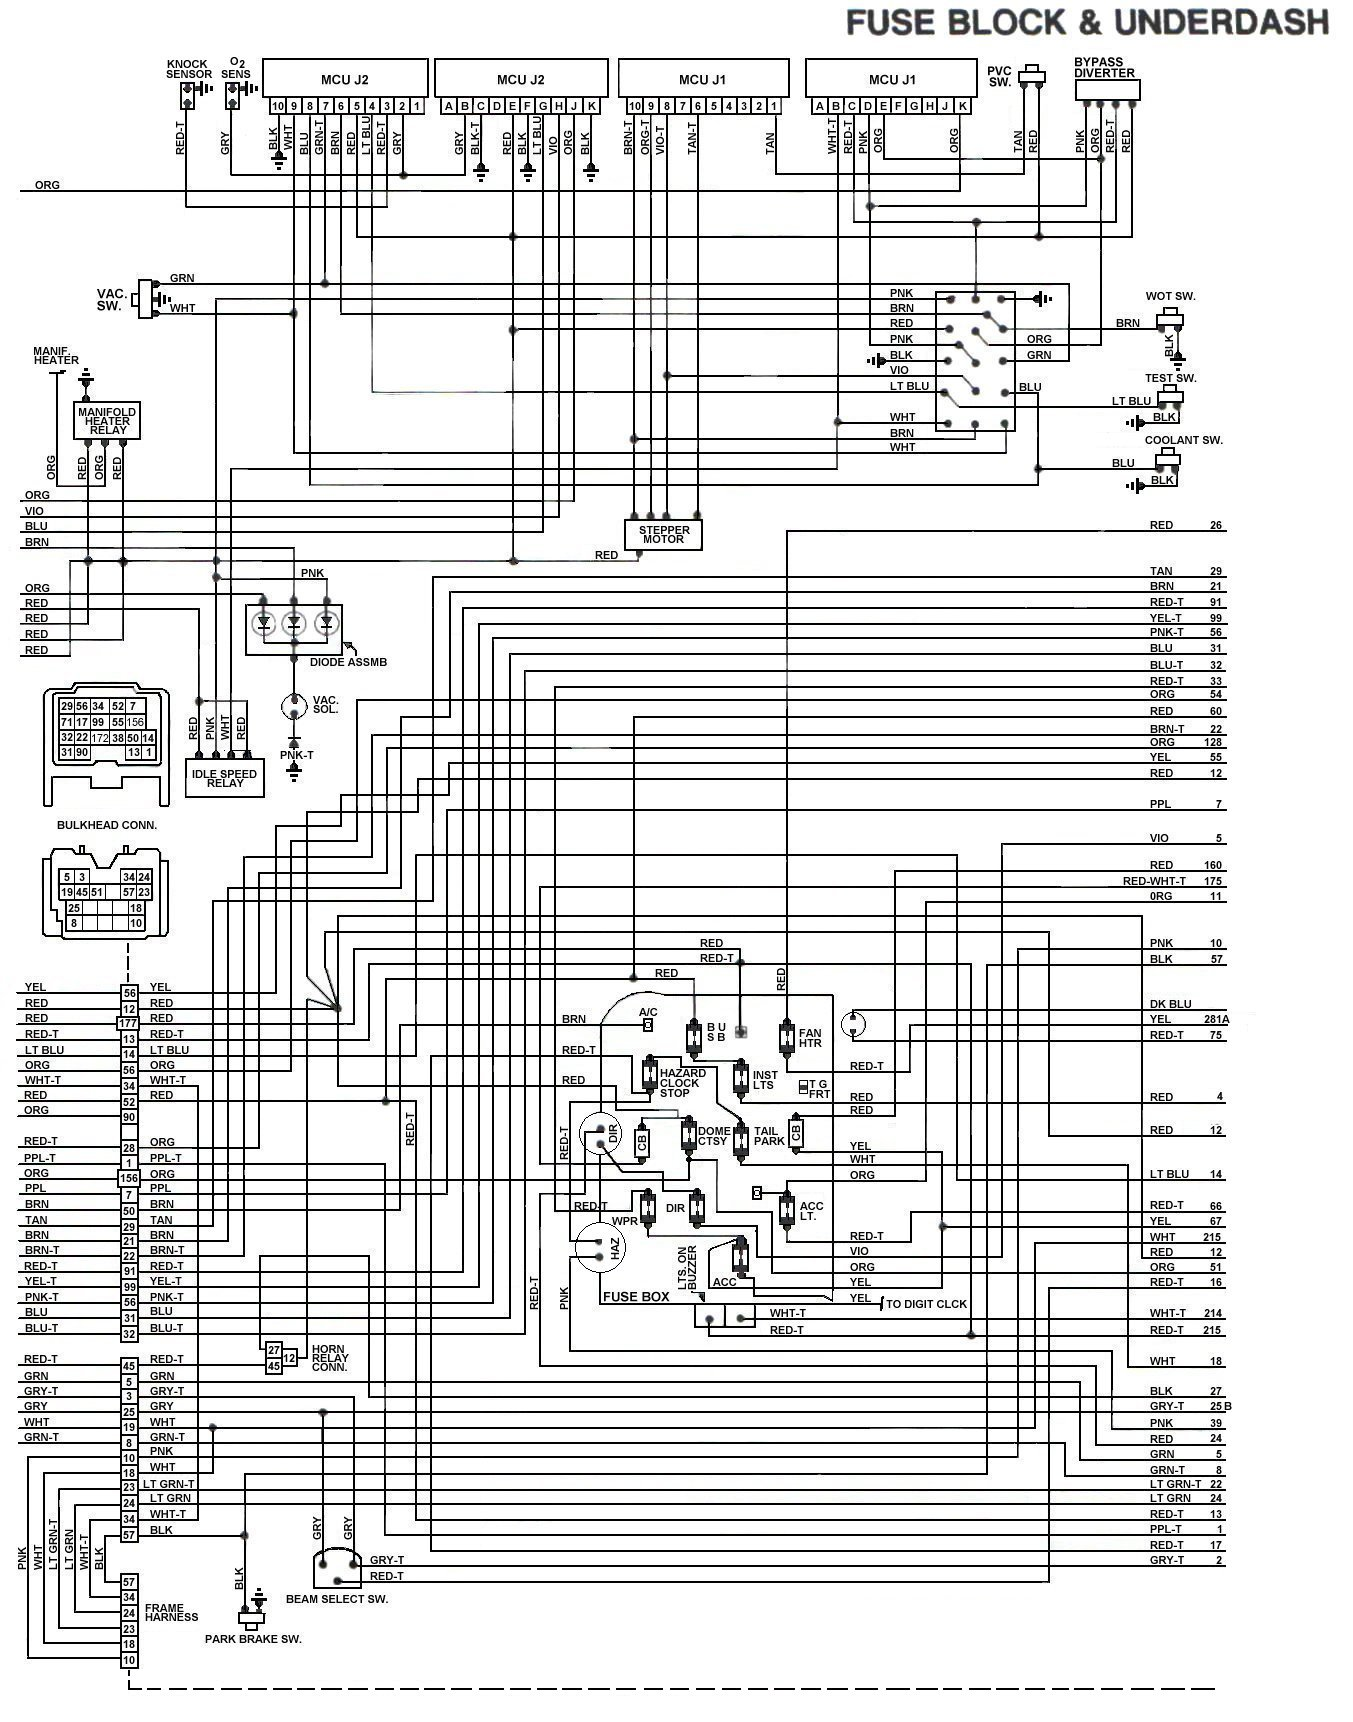 83_FSJ_WiringDiagram_FuseBlock Underdash tom 'oljeep' collins fsj wiring page 1986 chevy c10 wiring diagram at creativeand.co